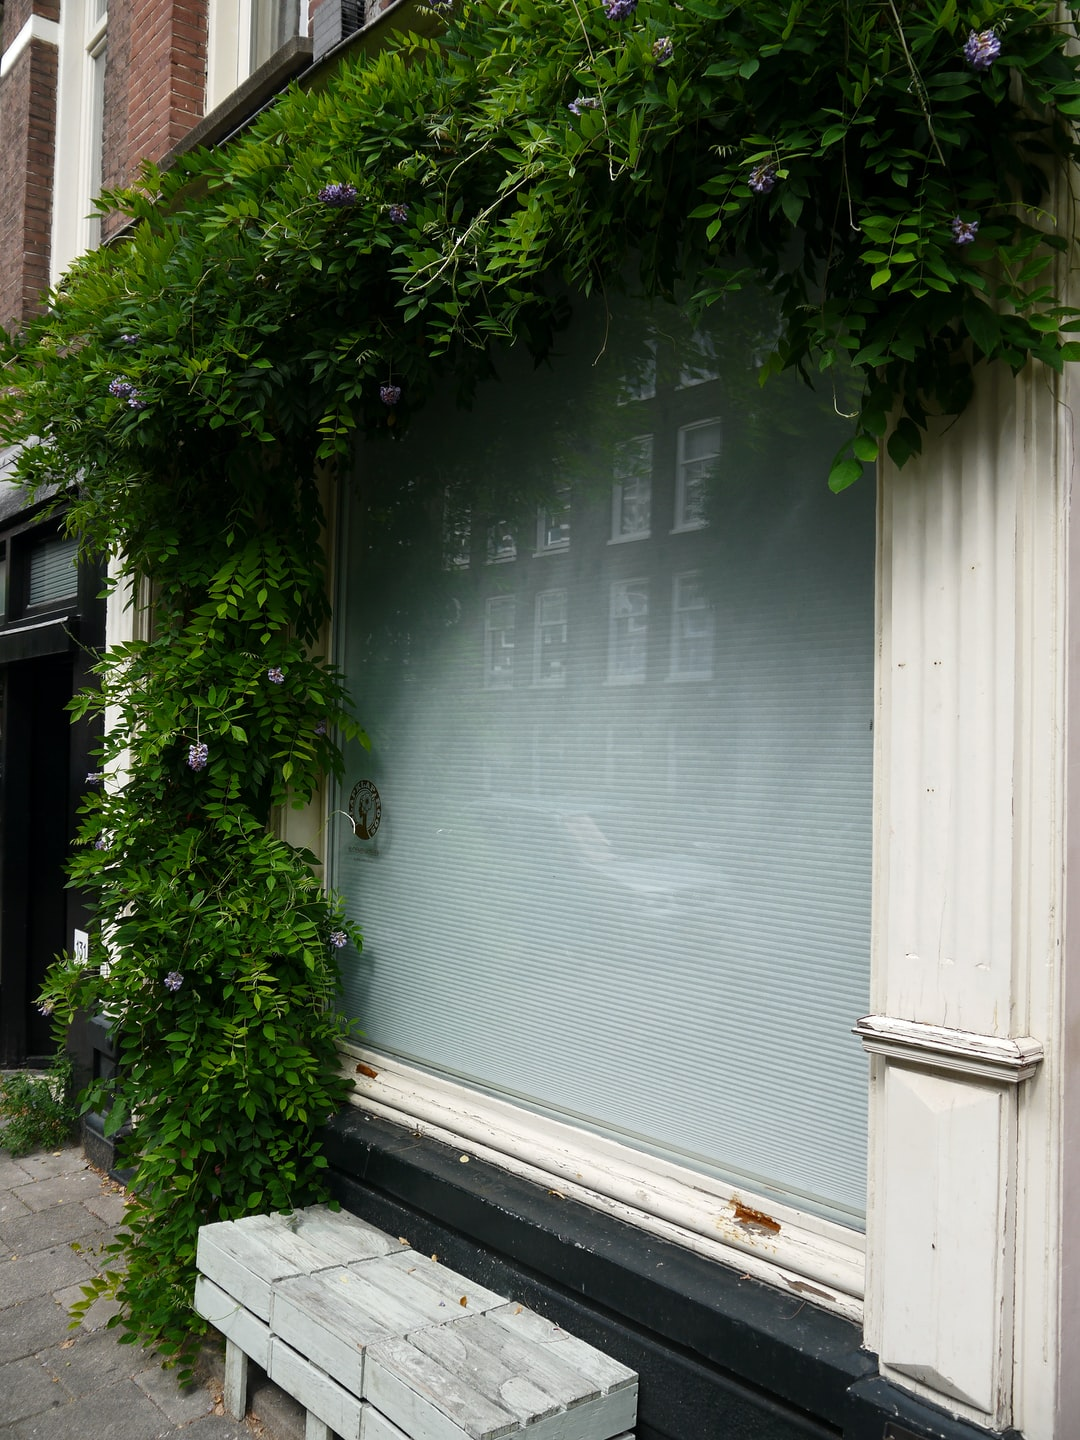 Photo of an empty reflecting shop-window with closed blinds; it is a picture in a street of the Pijp-district in Amsterdam city. Urban photography of The Netherlands by Fons Heijnsbroek